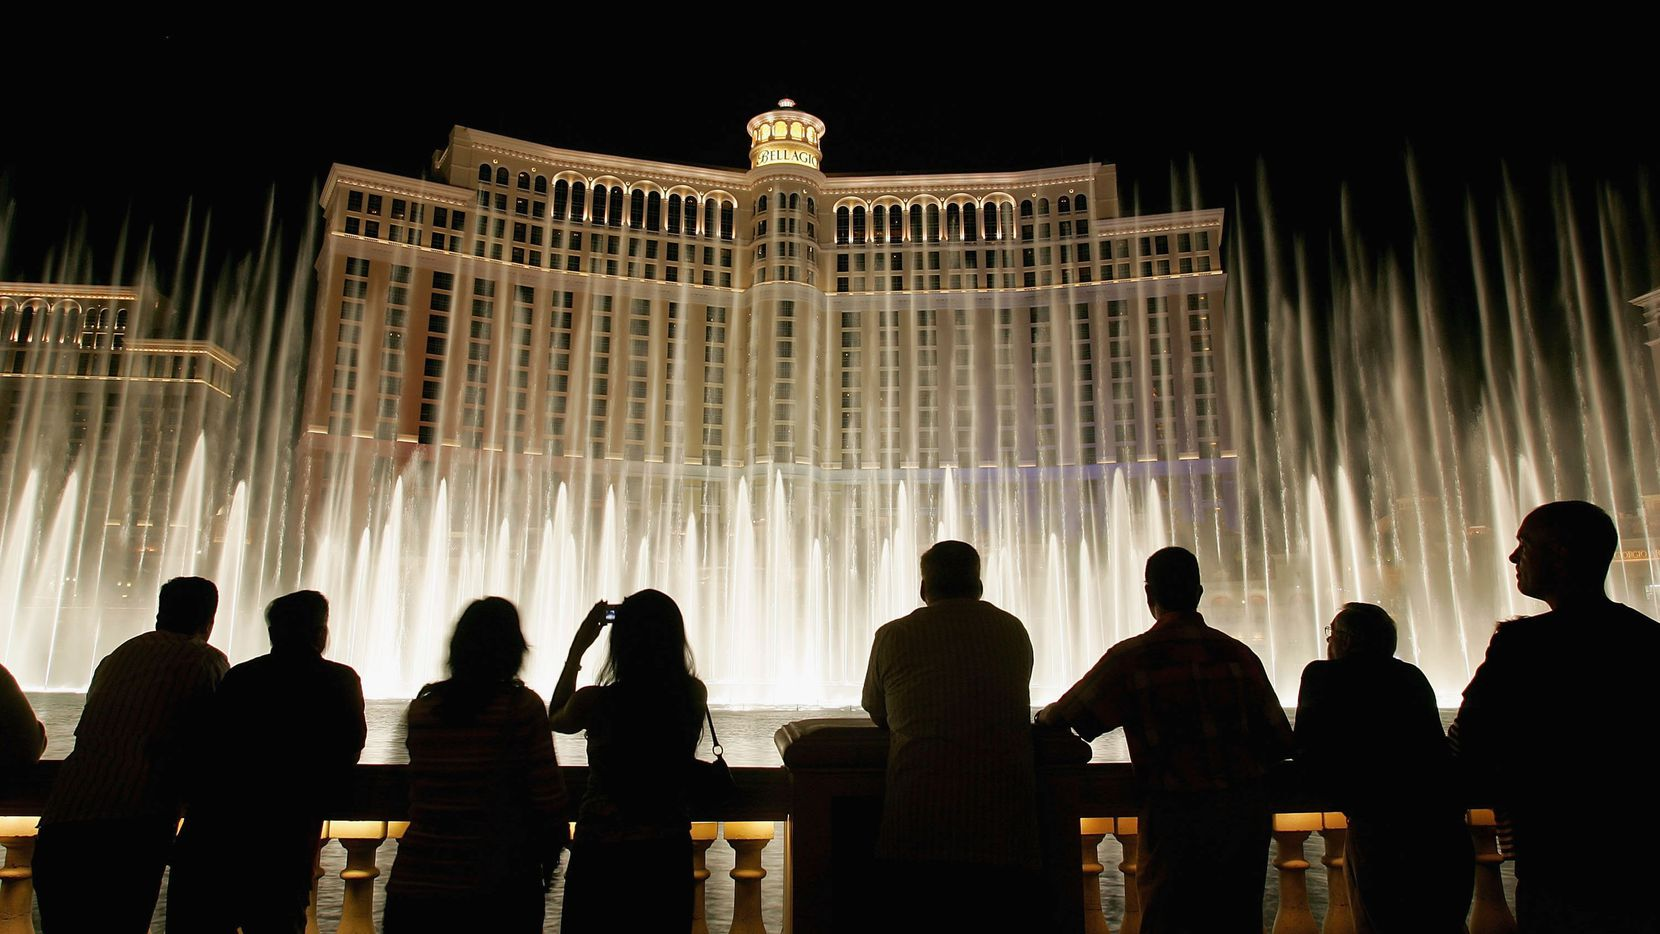 Tourists are silhouetted as they watch the Bellagio fountain show on the Las Vegas Strip in October 2005 in Las Vegas.